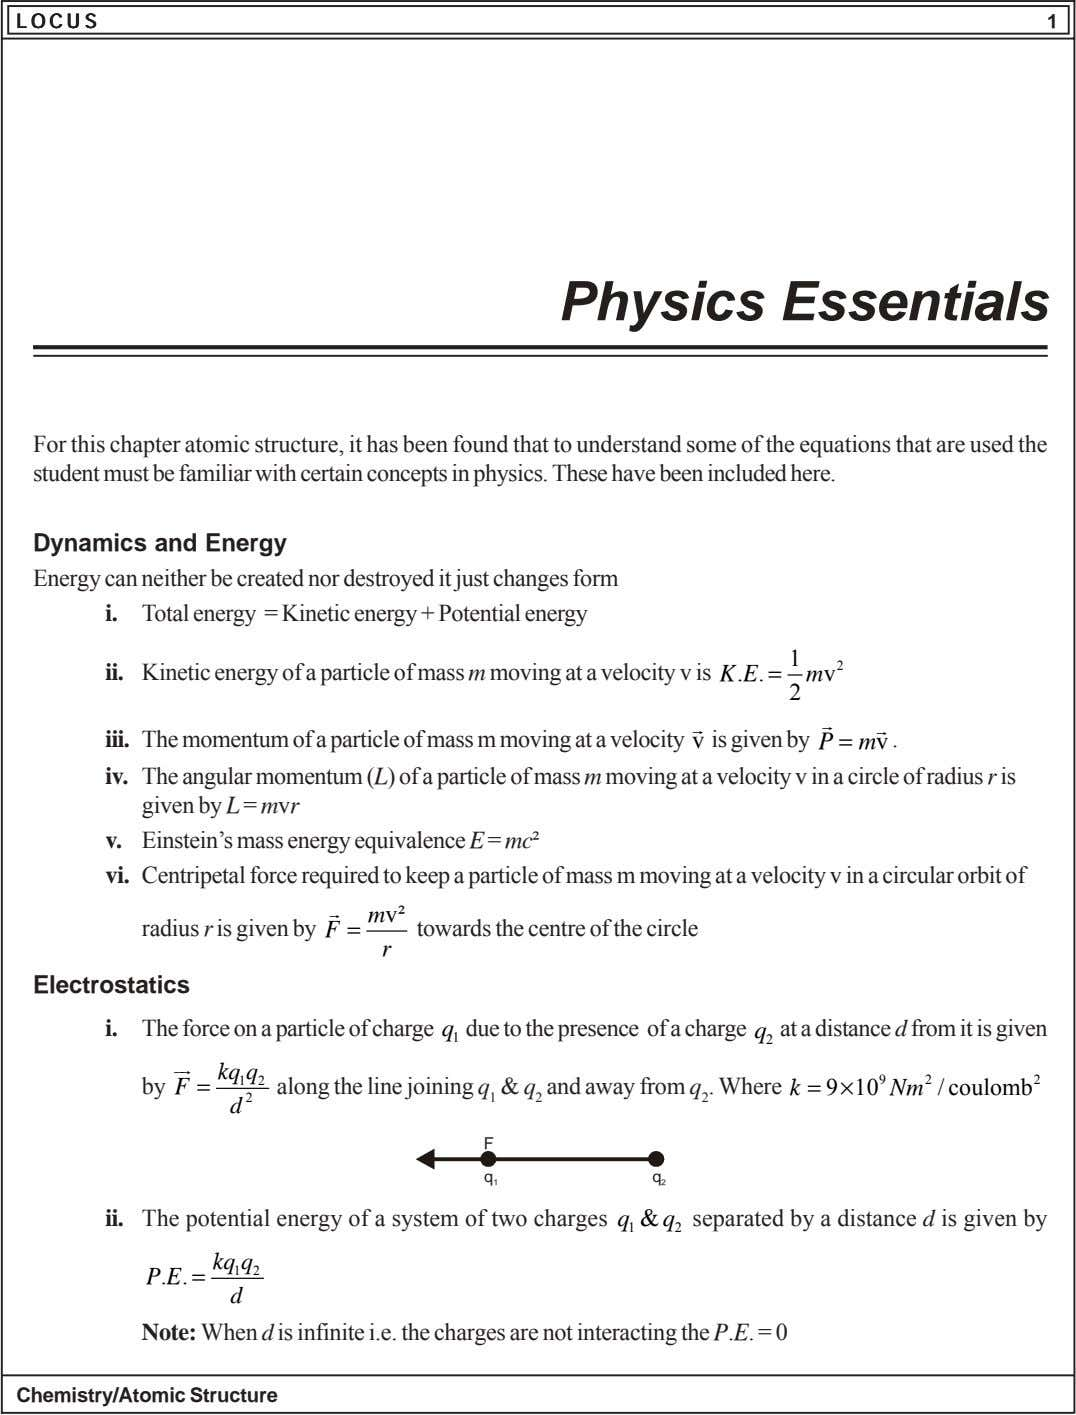 LOCUSLOCUSLOCUSLOCUSLOCUS 1 Physics Essentials For this chapter atomic structure, it has been found that to